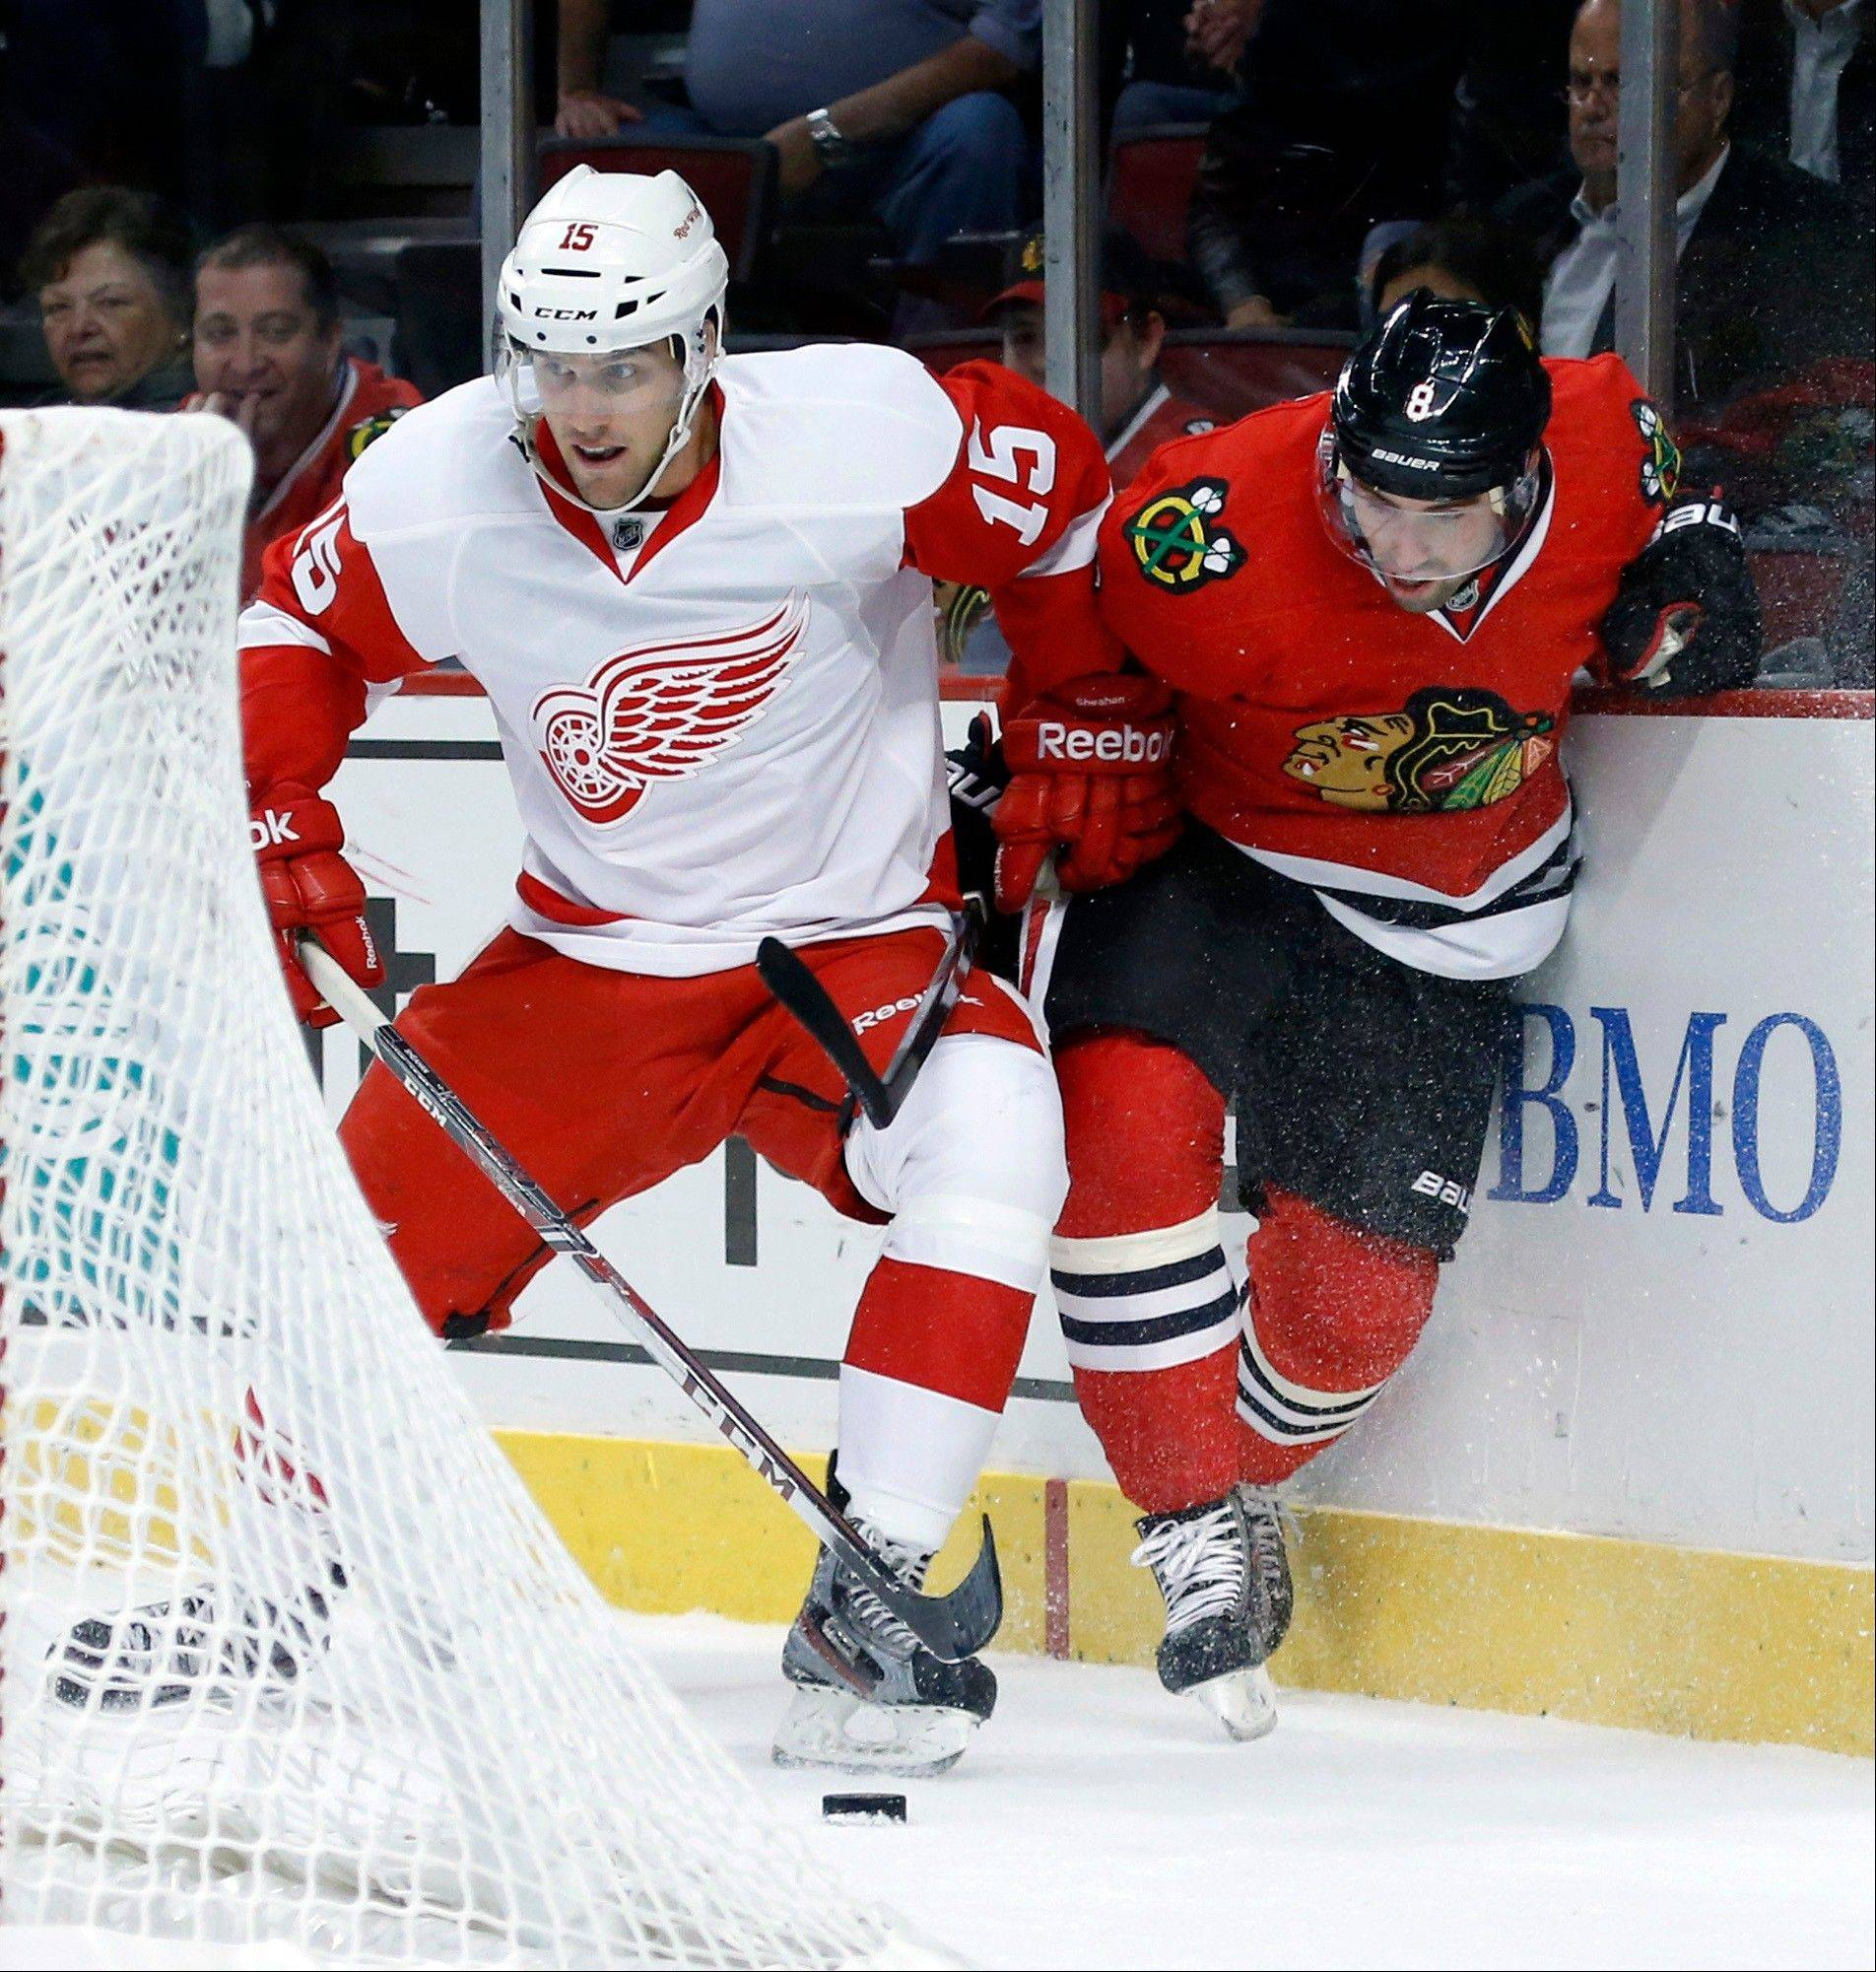 Blackhawks defenseman Nick Leddy, right, battles Red Wings center Riley Sheahan for the puck during the preseason opener last week.